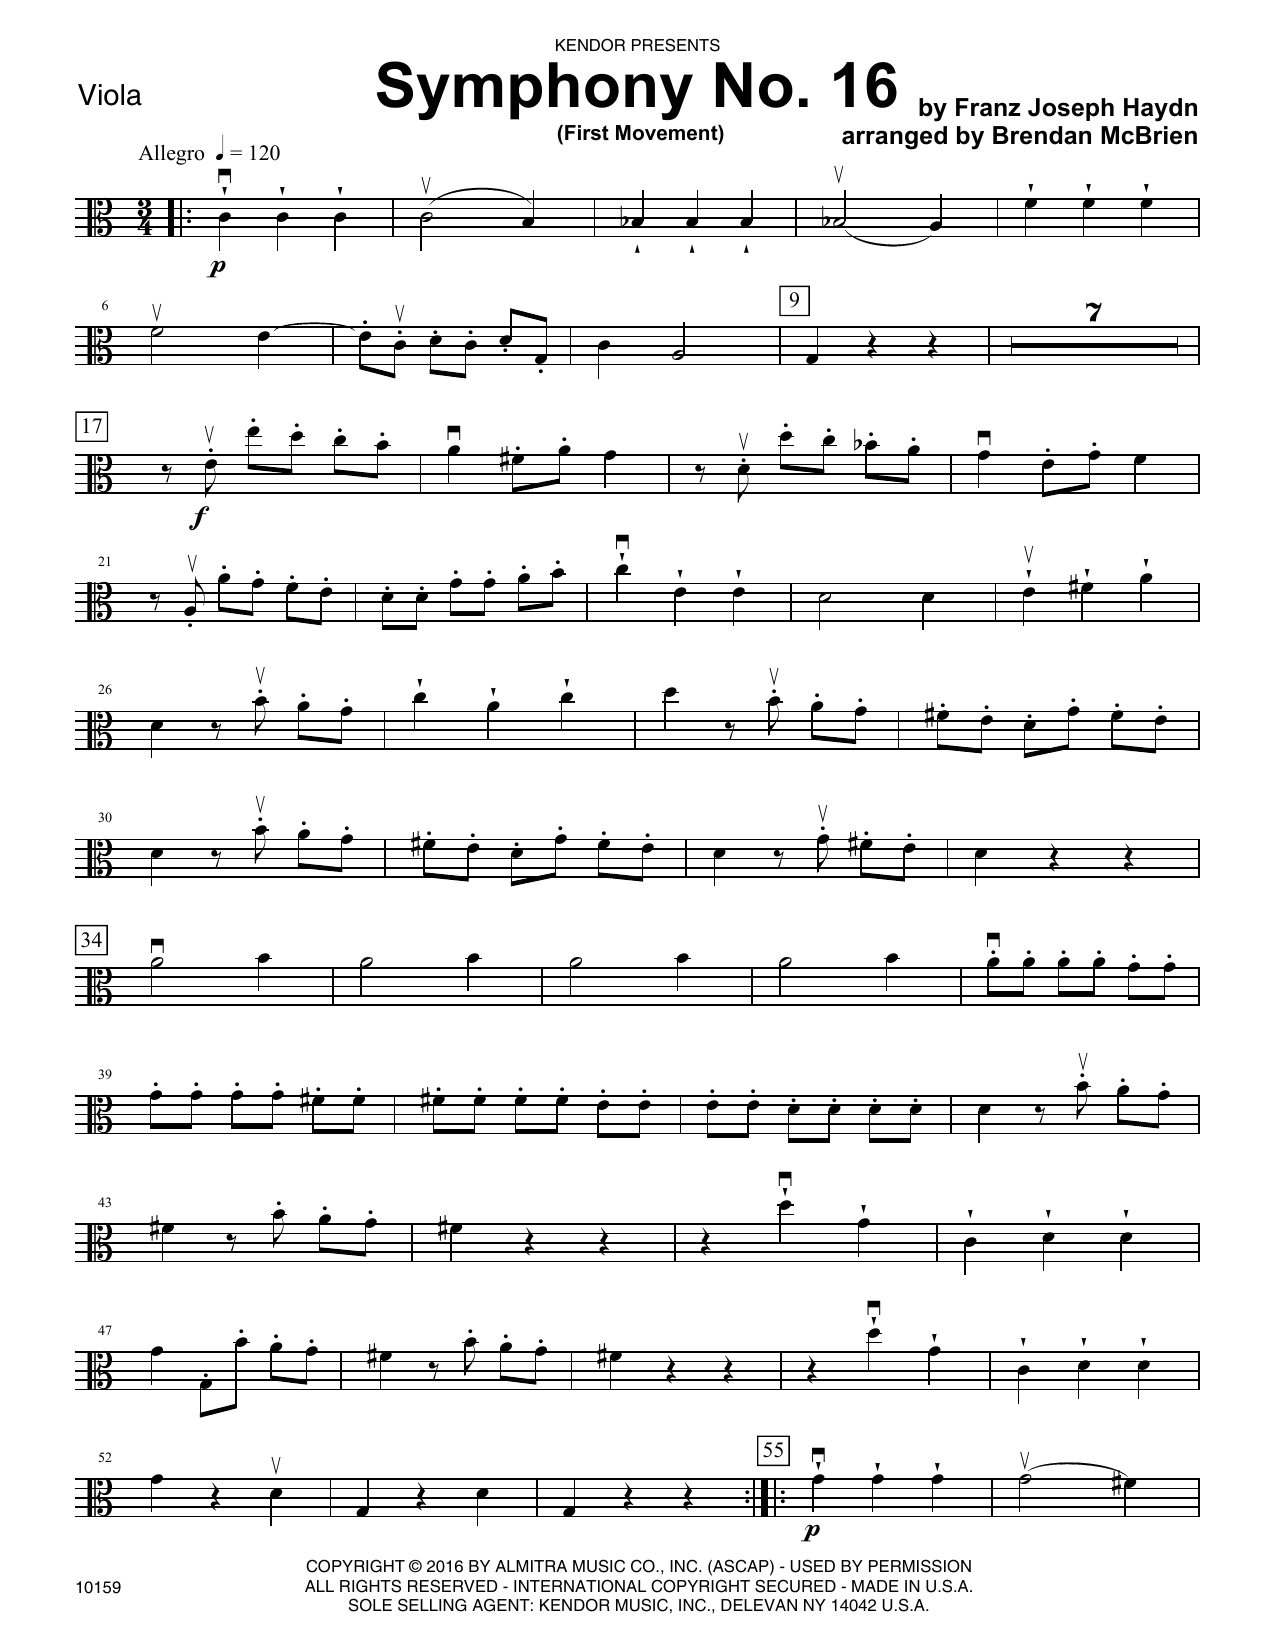 Symphony No. 16 (First Movement) - Viola